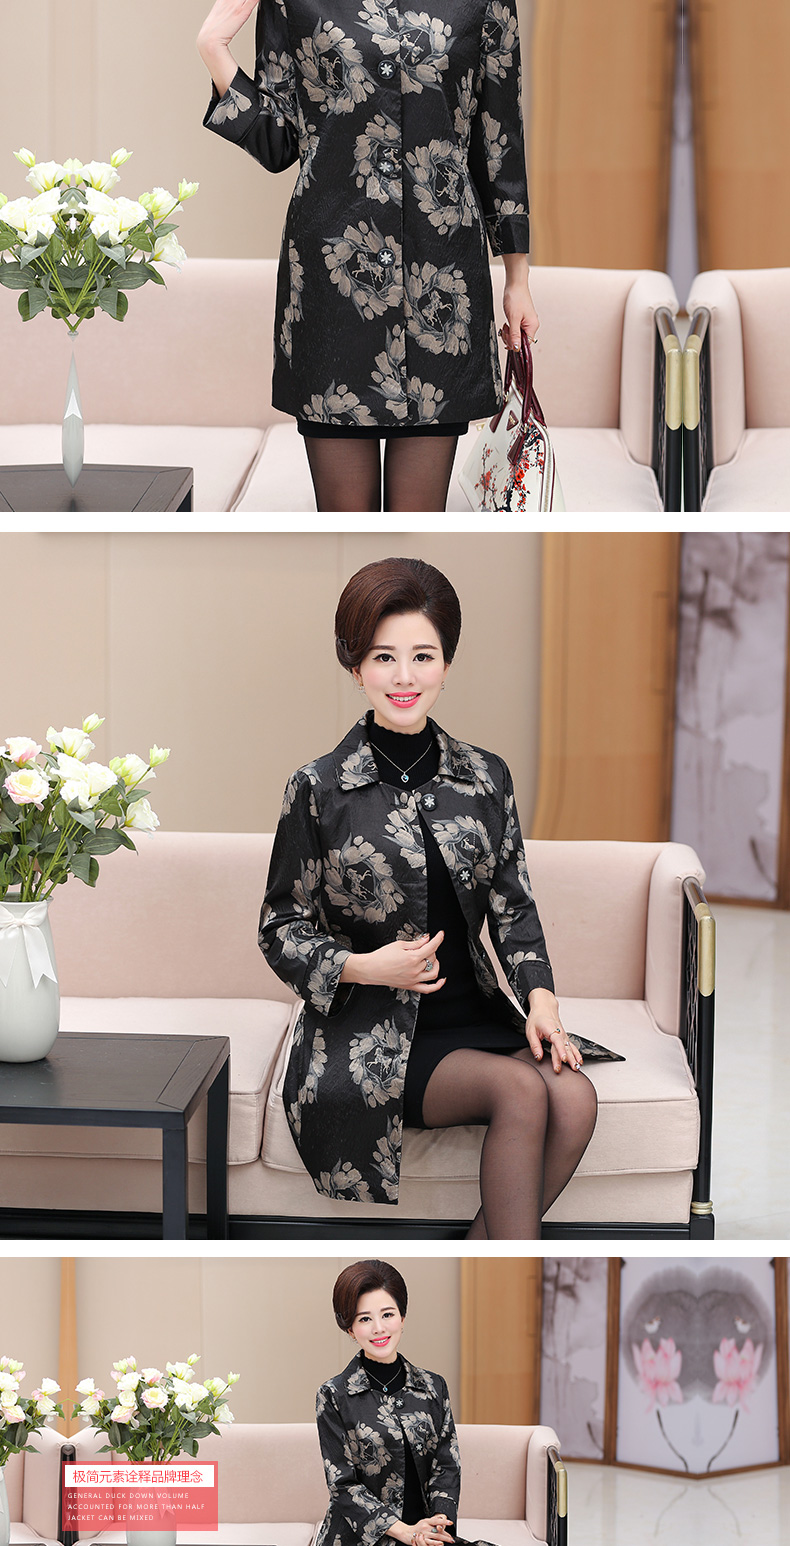 Chinese Women\'s Elegant Floral Trench Coats Single-breasted Duster Coat Matrue Woman Office Outfit Mandeau Femme Overcoats 2017 (7)